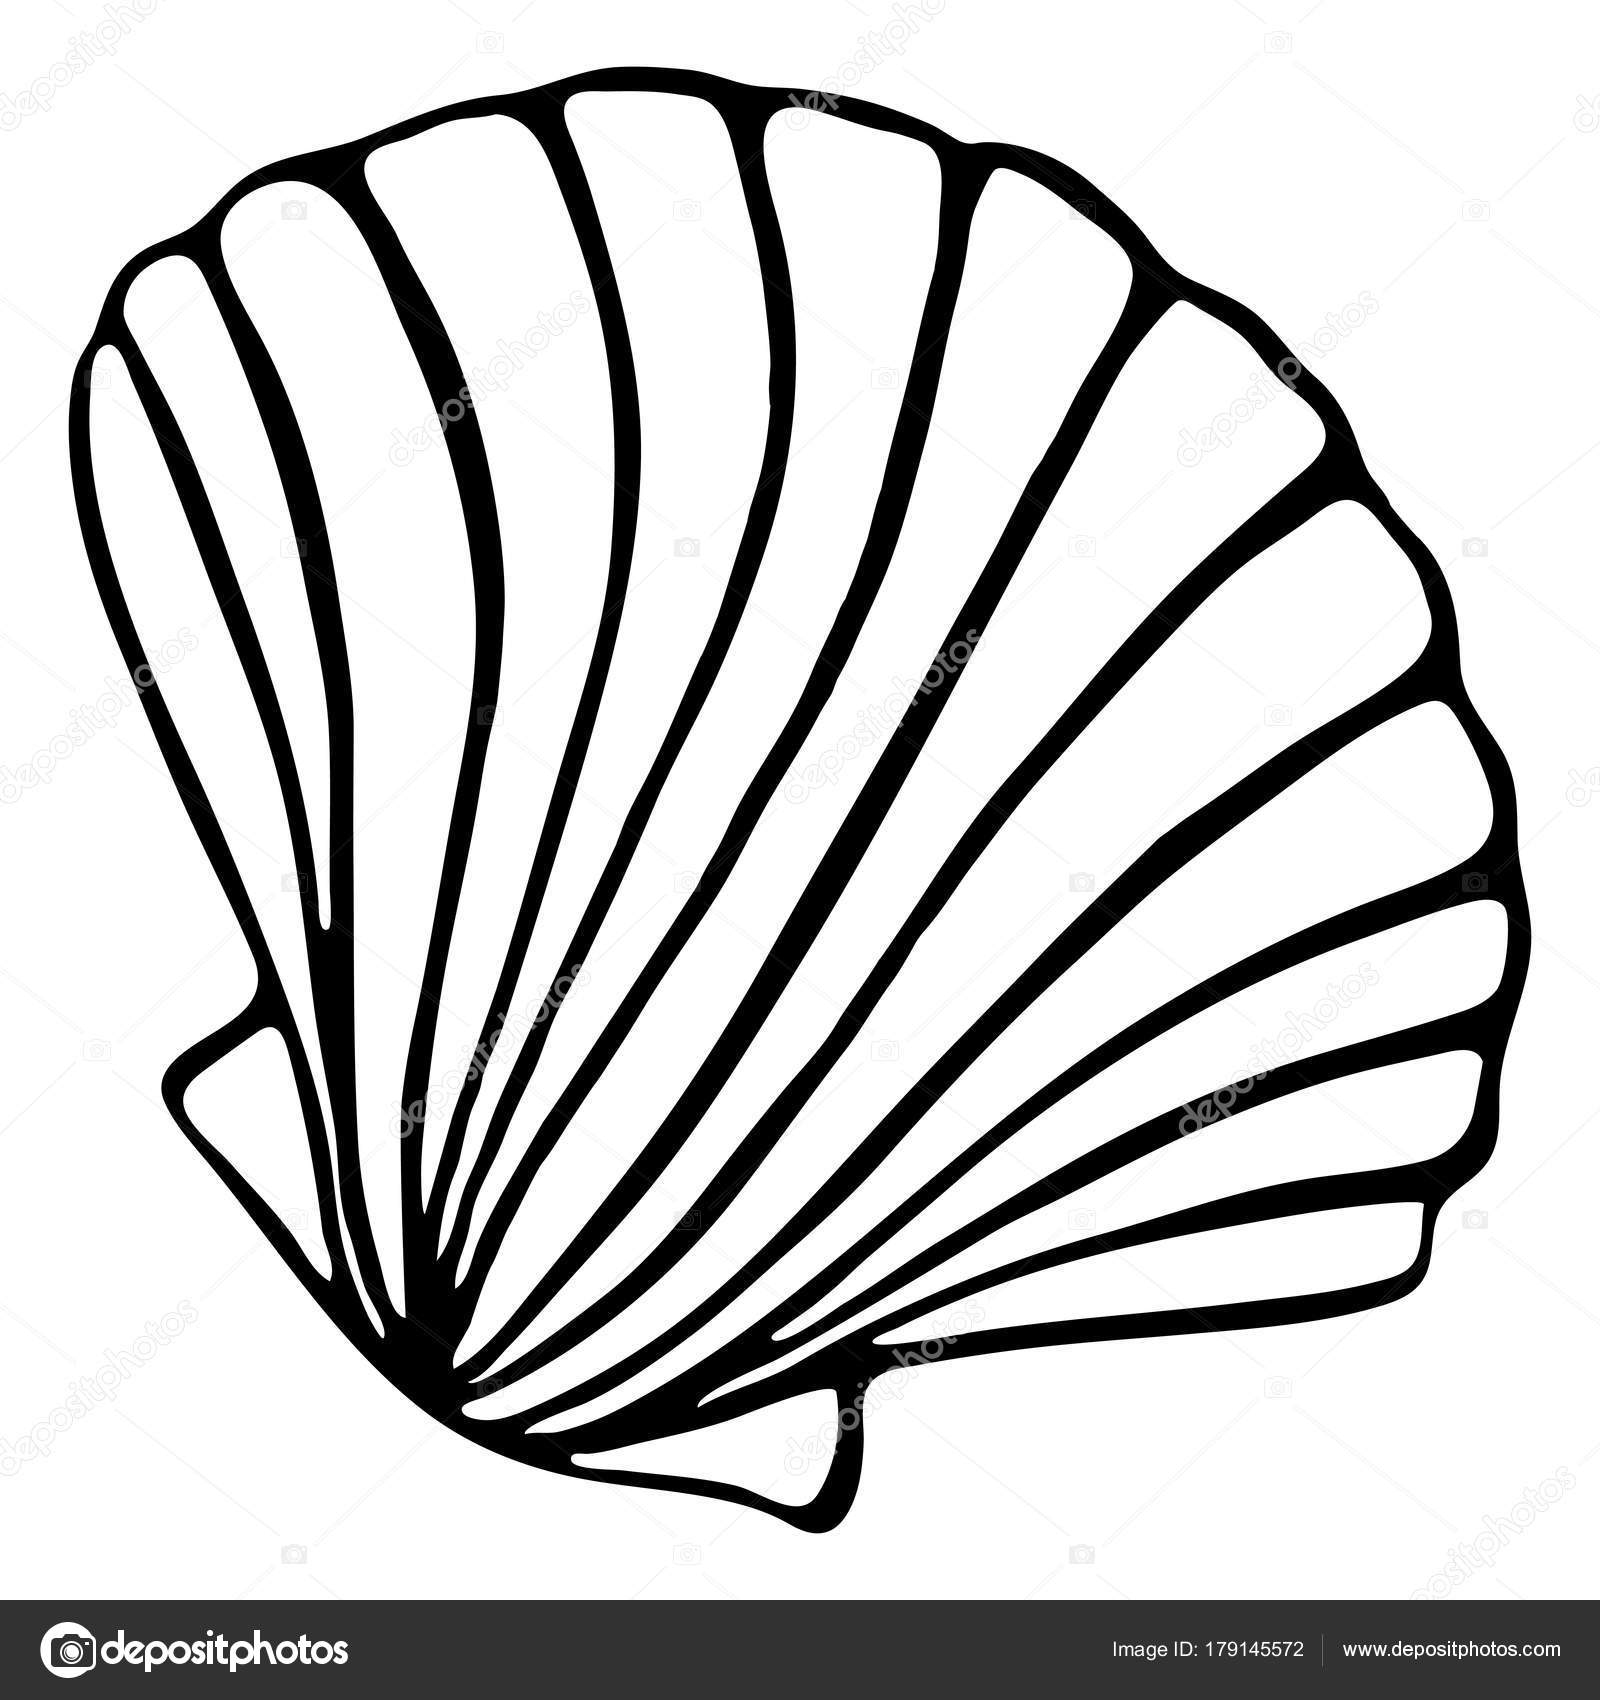 1600x1700 Monochrome Black And White Sea Shell Seashell Silhouette Ink Line